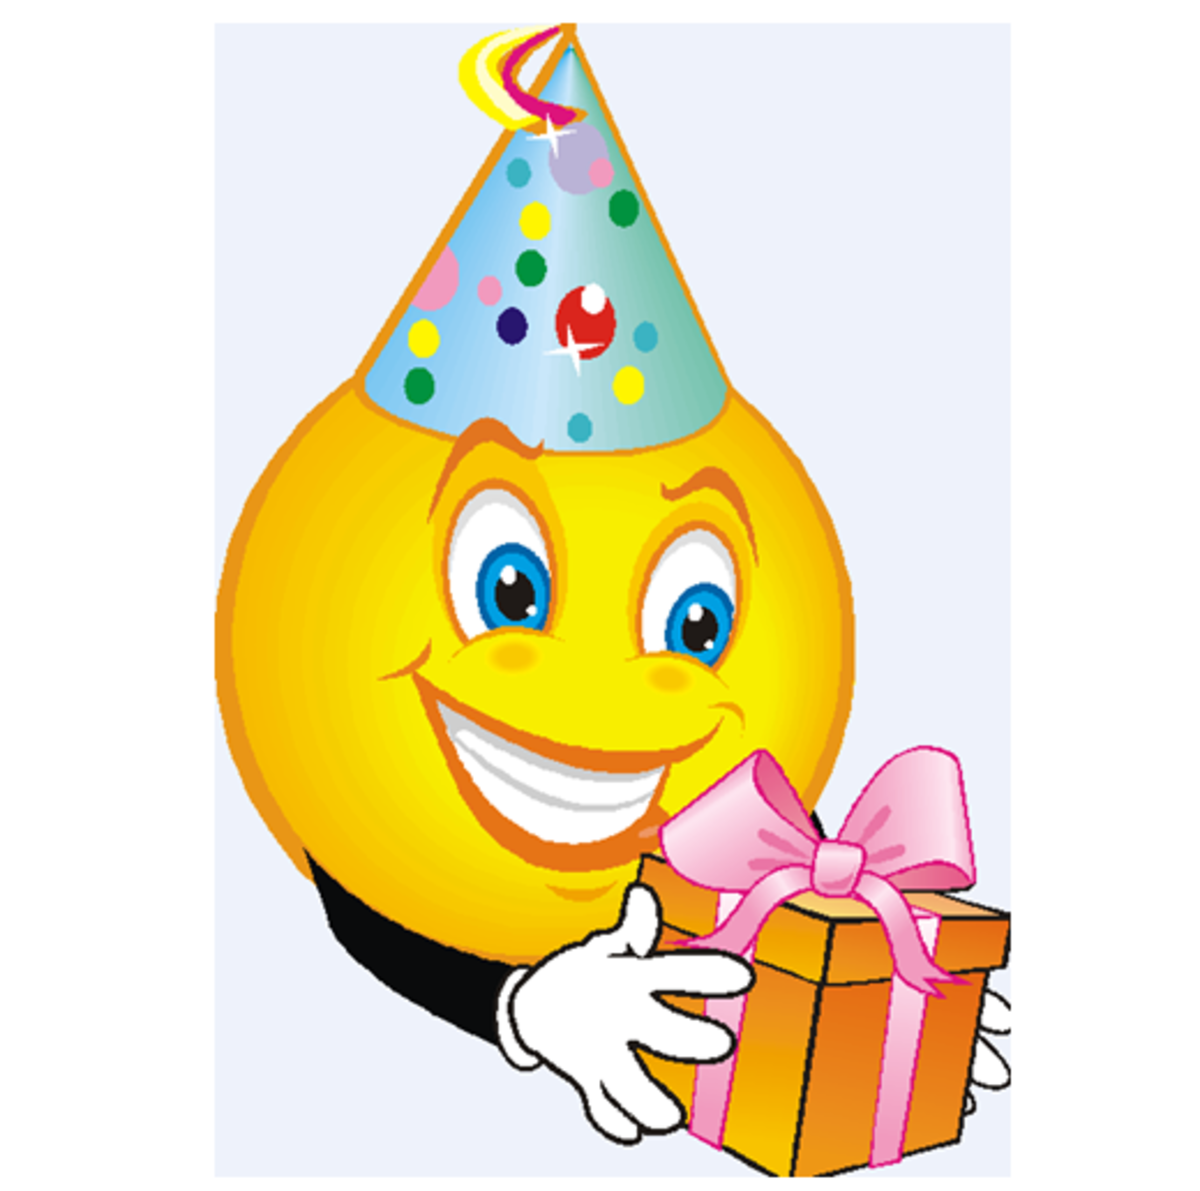 Smiley Face with Party Hat and Gift